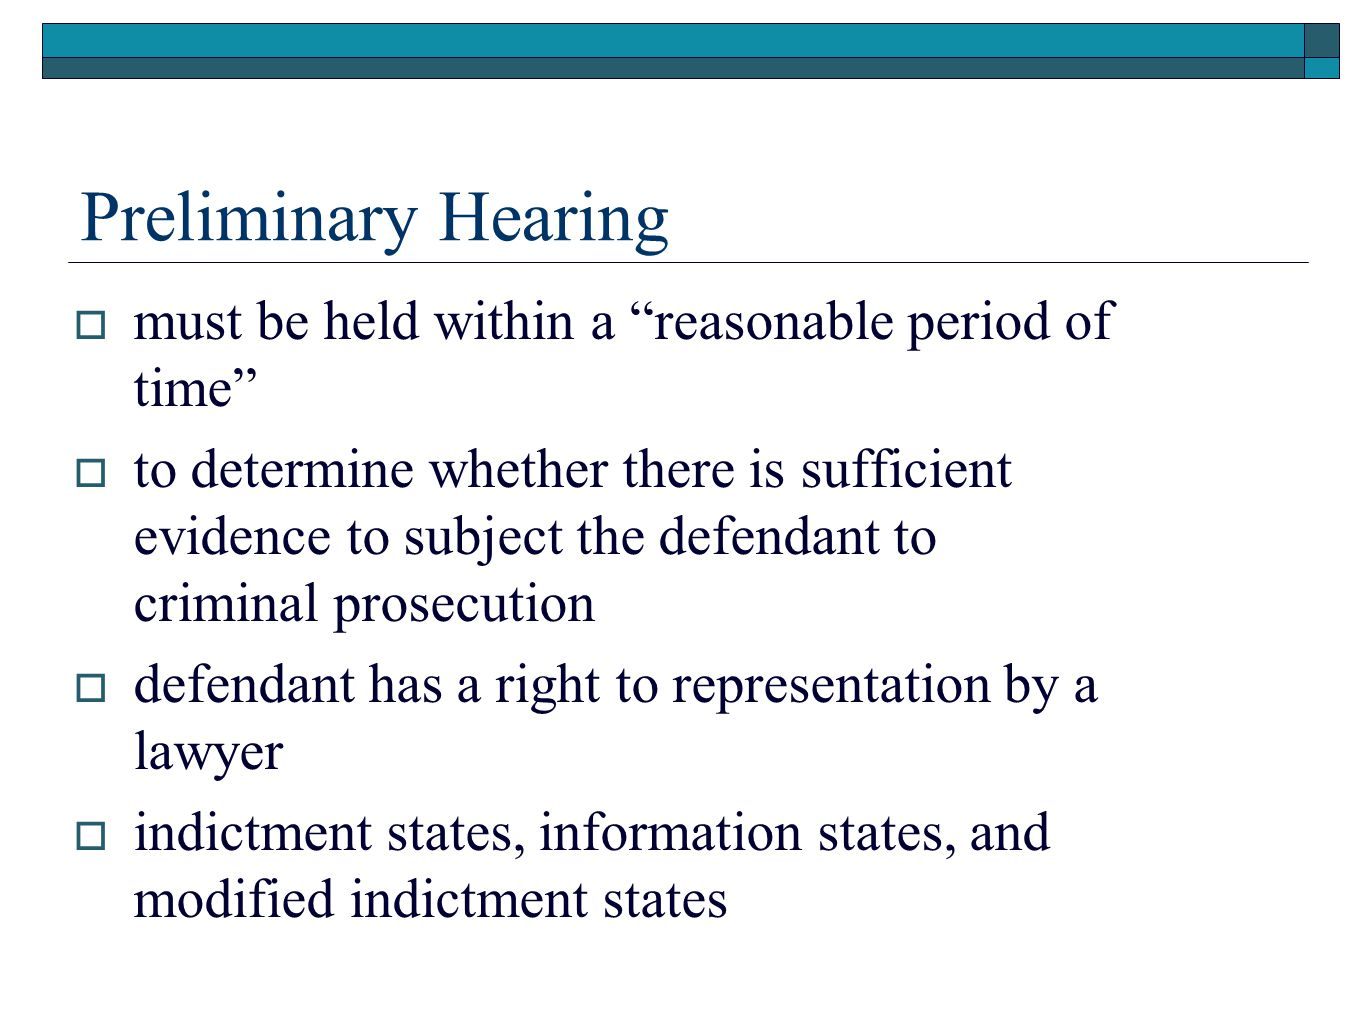 Preliminary Hearing  must be held within a reasonable period of time  to determine whether there is sufficient evidence to subject the defendant to criminal prosecution  defendant has a right to representation by a lawyer  indictment states, information states, and modified indictment states